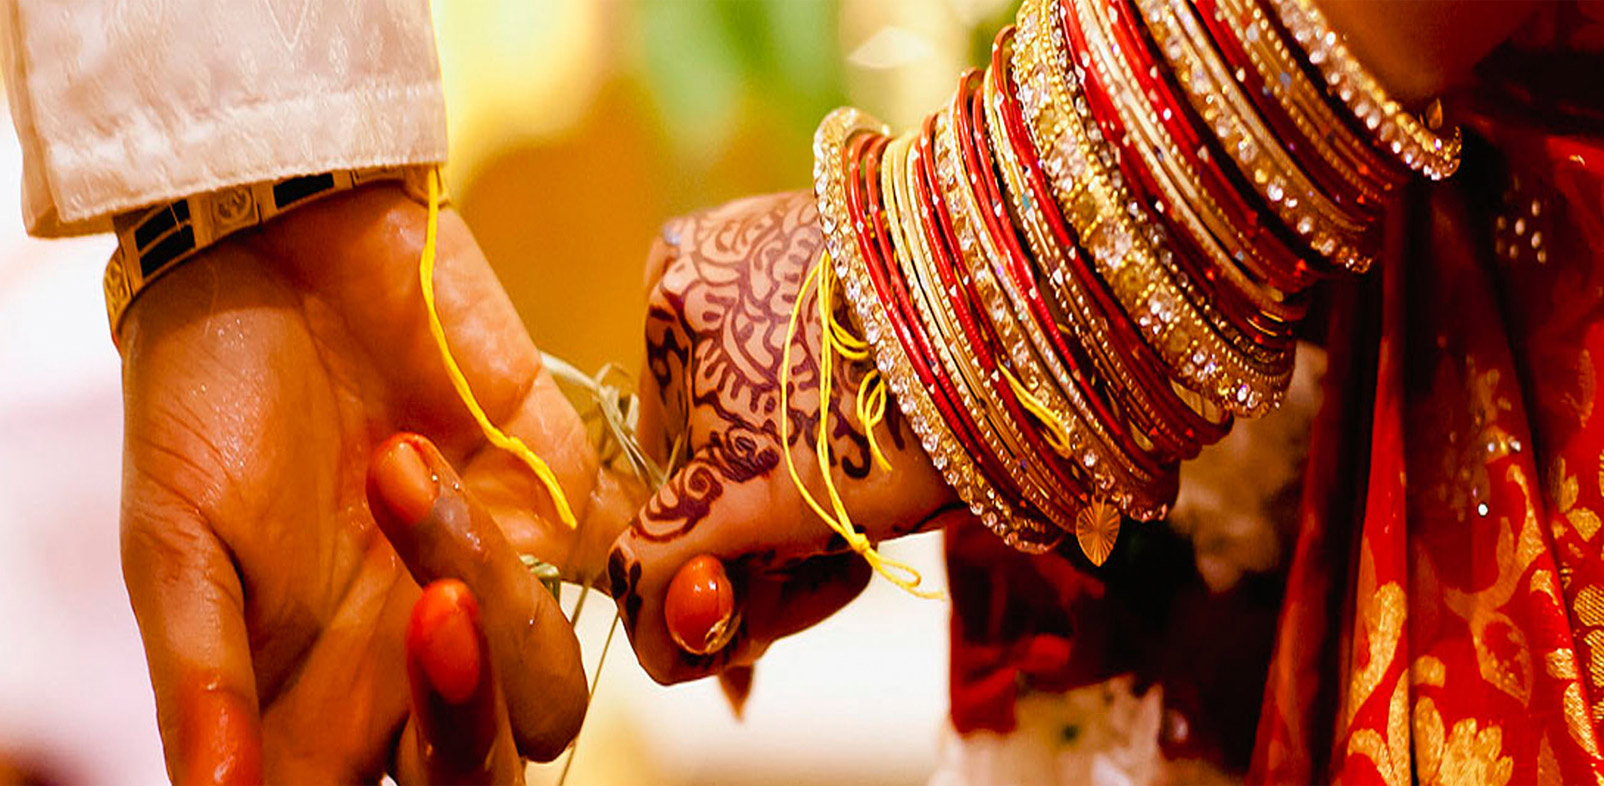 Image for Pre Matrimonial Investigation Services in India